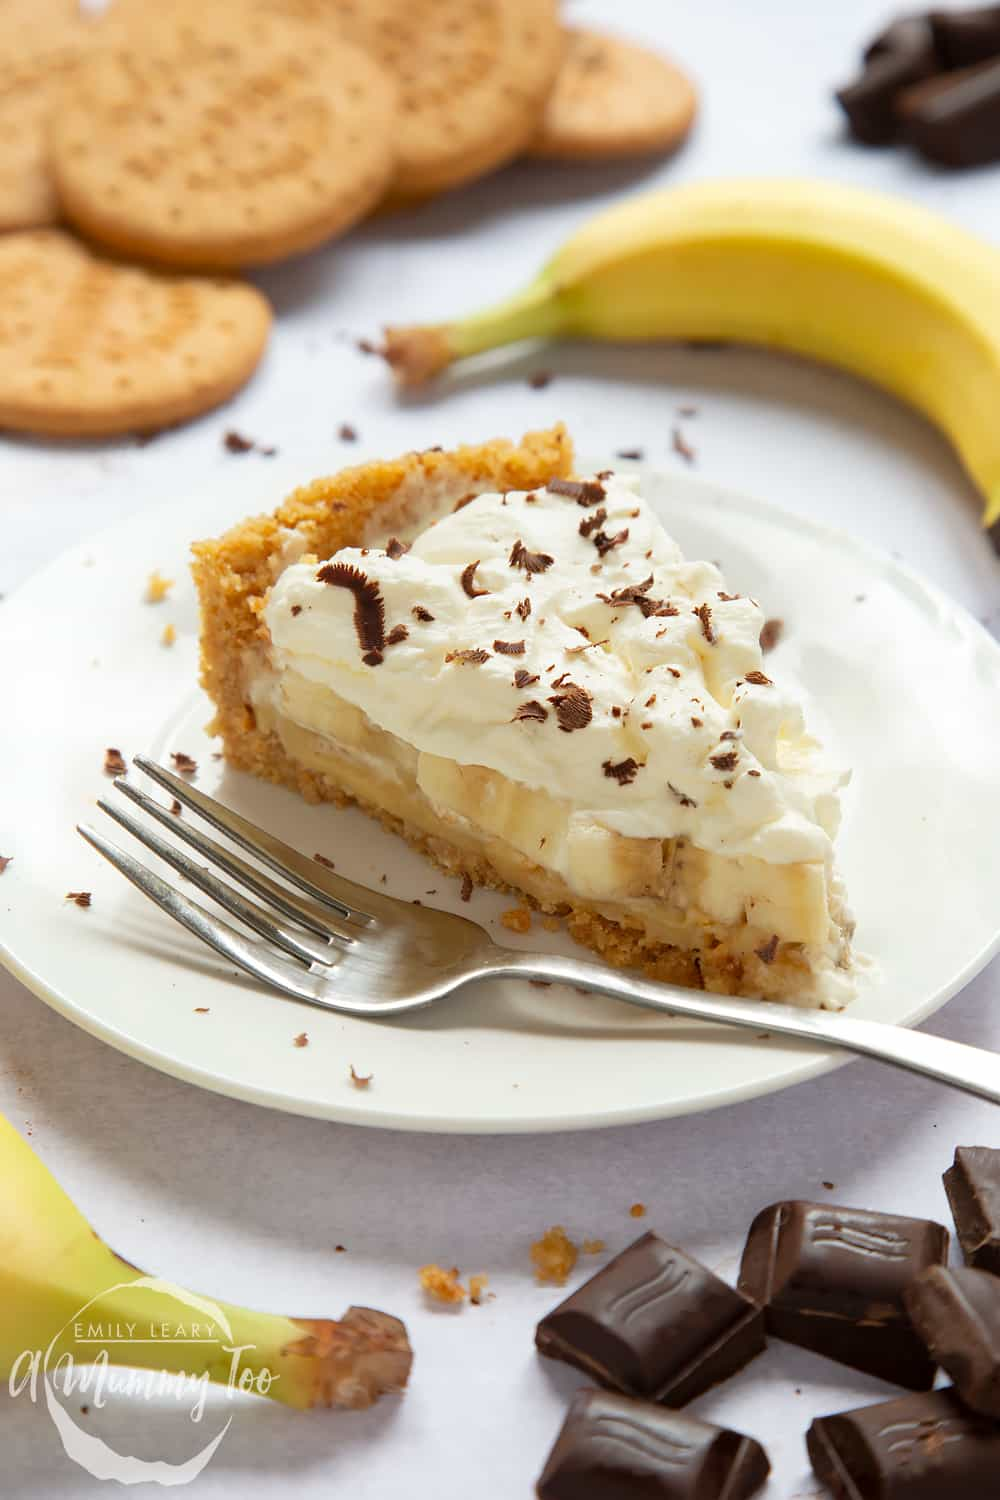 The perfect classic banoffee pie recipe - slice on a plate